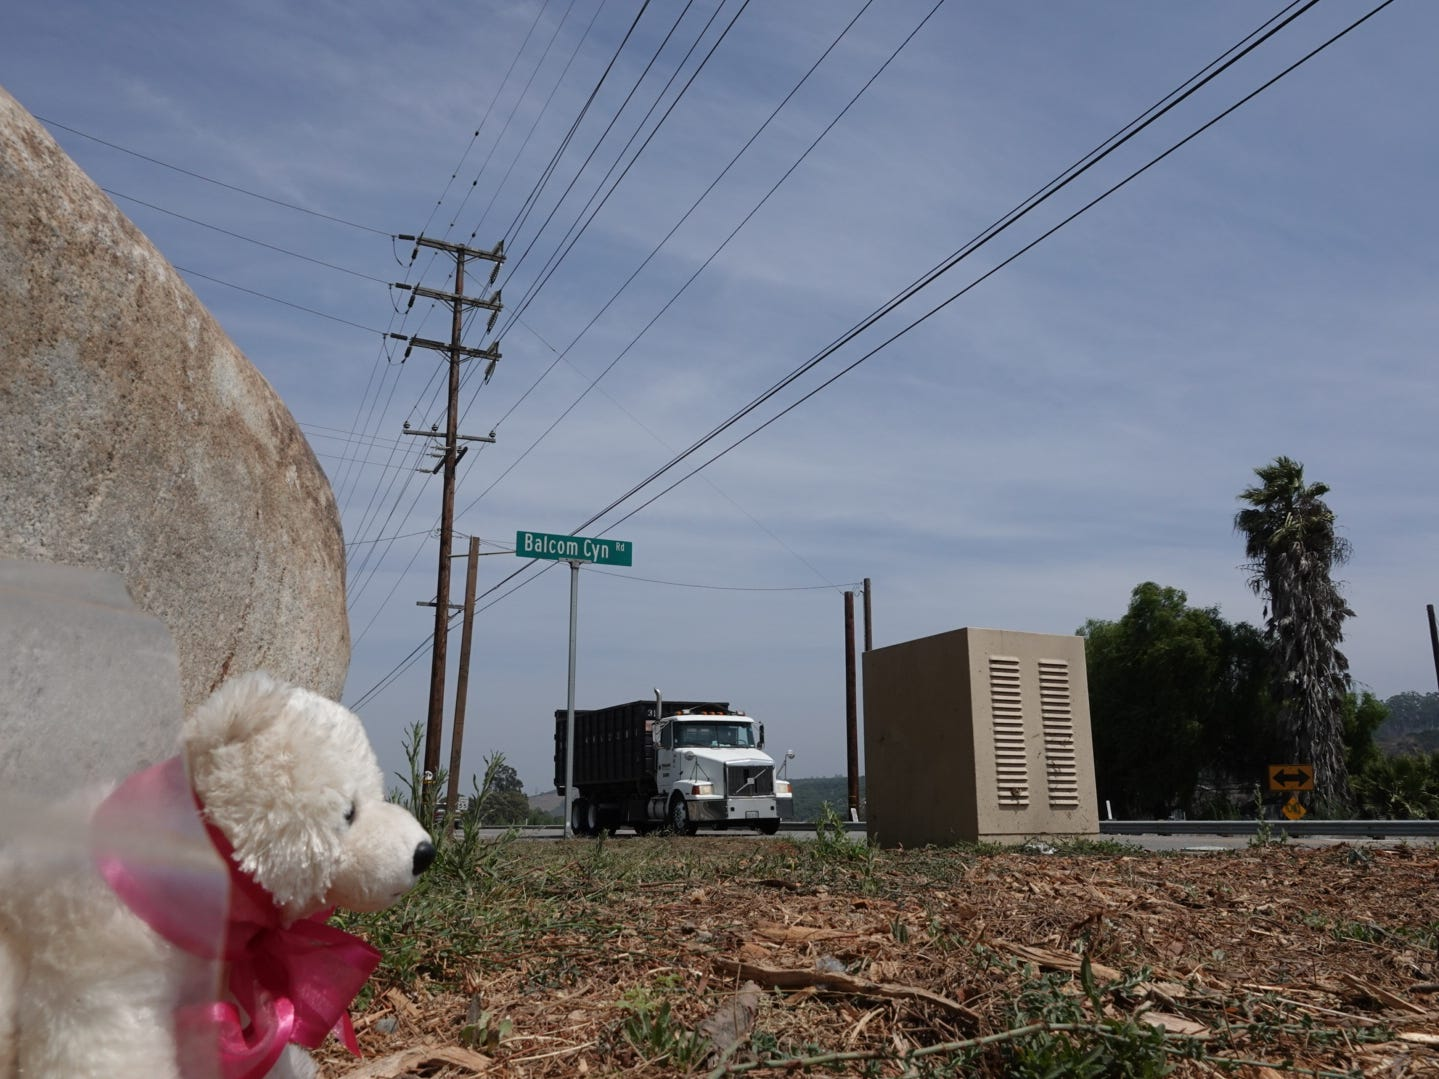 A stuffed bear and flowers had been placed by a rock near the intersection of Balcom Canyon Road and Highway 118, where a 9-year-old boy was killed in a fatal crash this month. Residents want a signal at what they say is a dangerous corner.